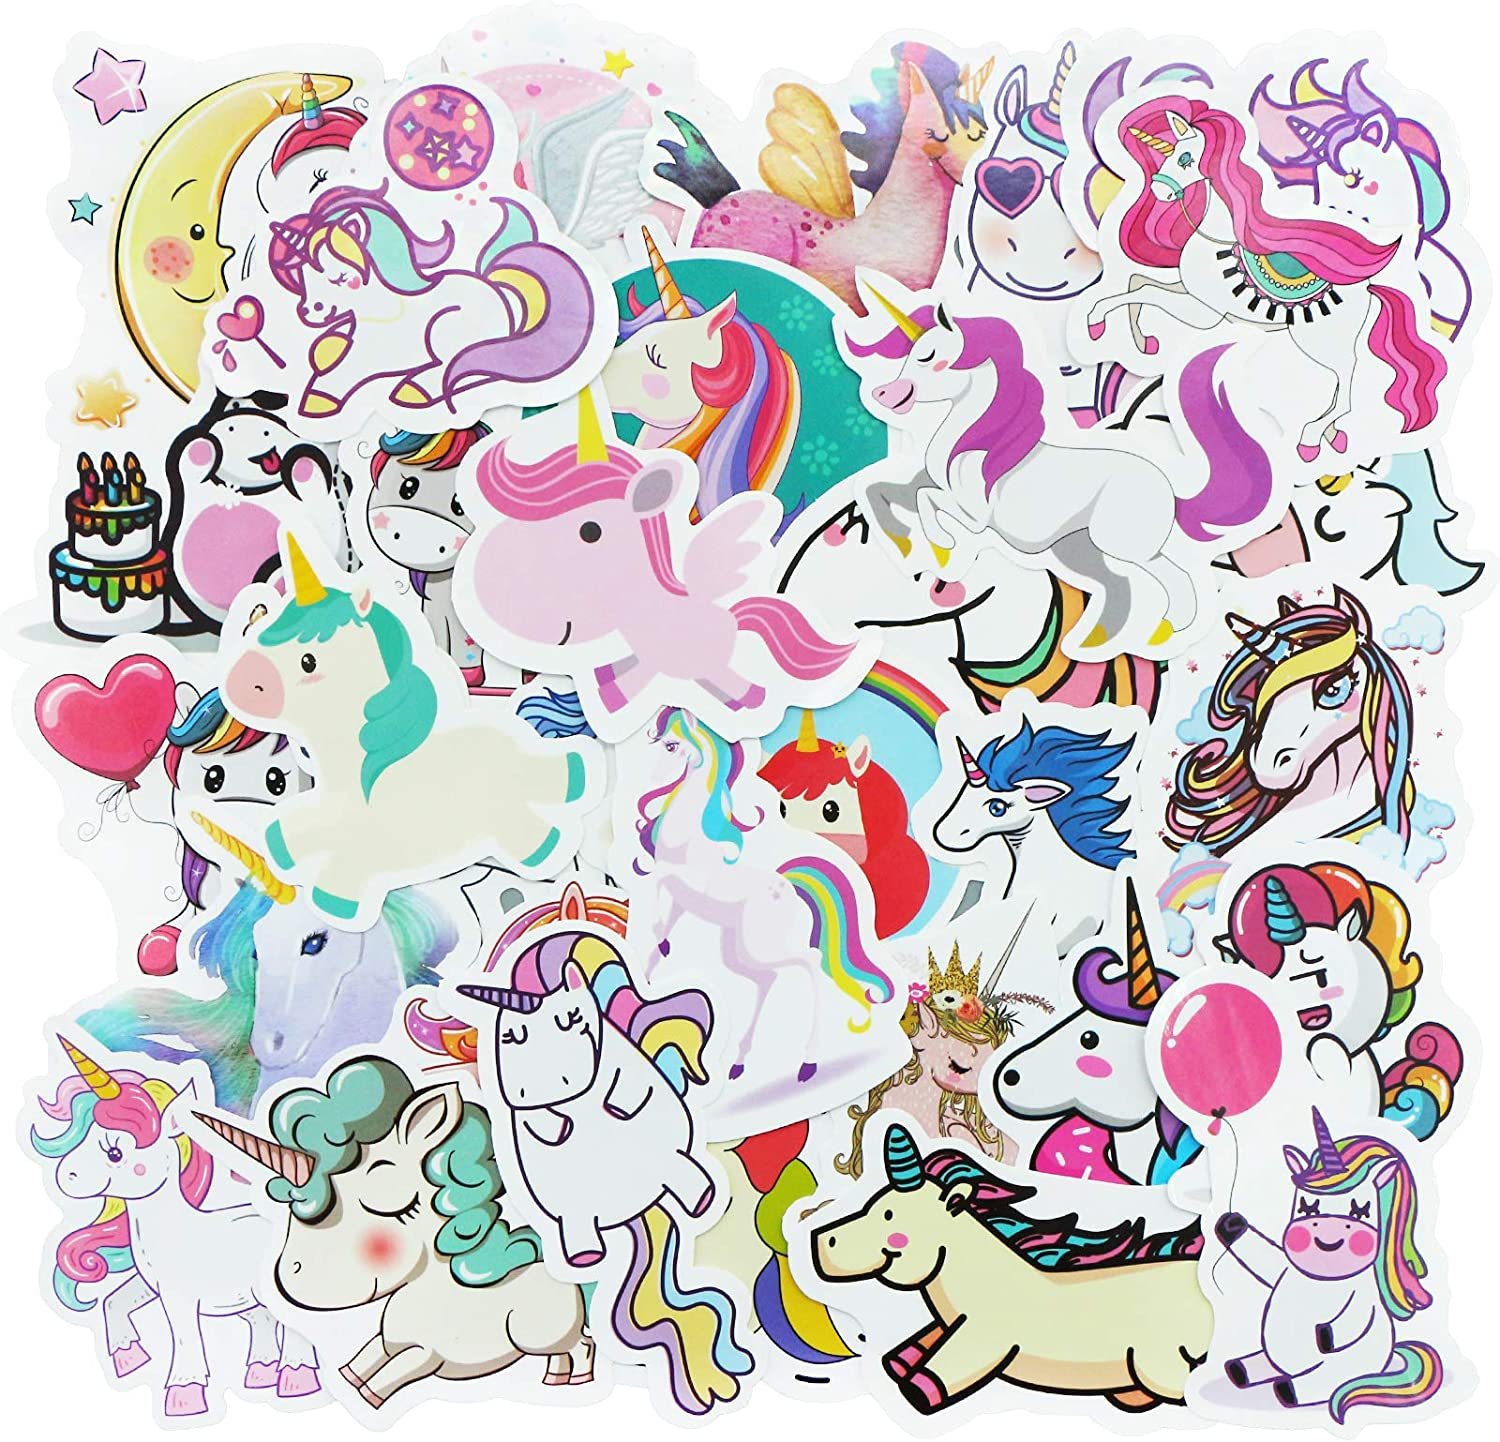 YAMIOW Cute Waterproof Vinyl Stickers for Luggage Guitar Water Bottle Fridge Travel Case Laptop Motorcycle Car Decal Graffiti Stickers (100 pcs for Unicorn Style)